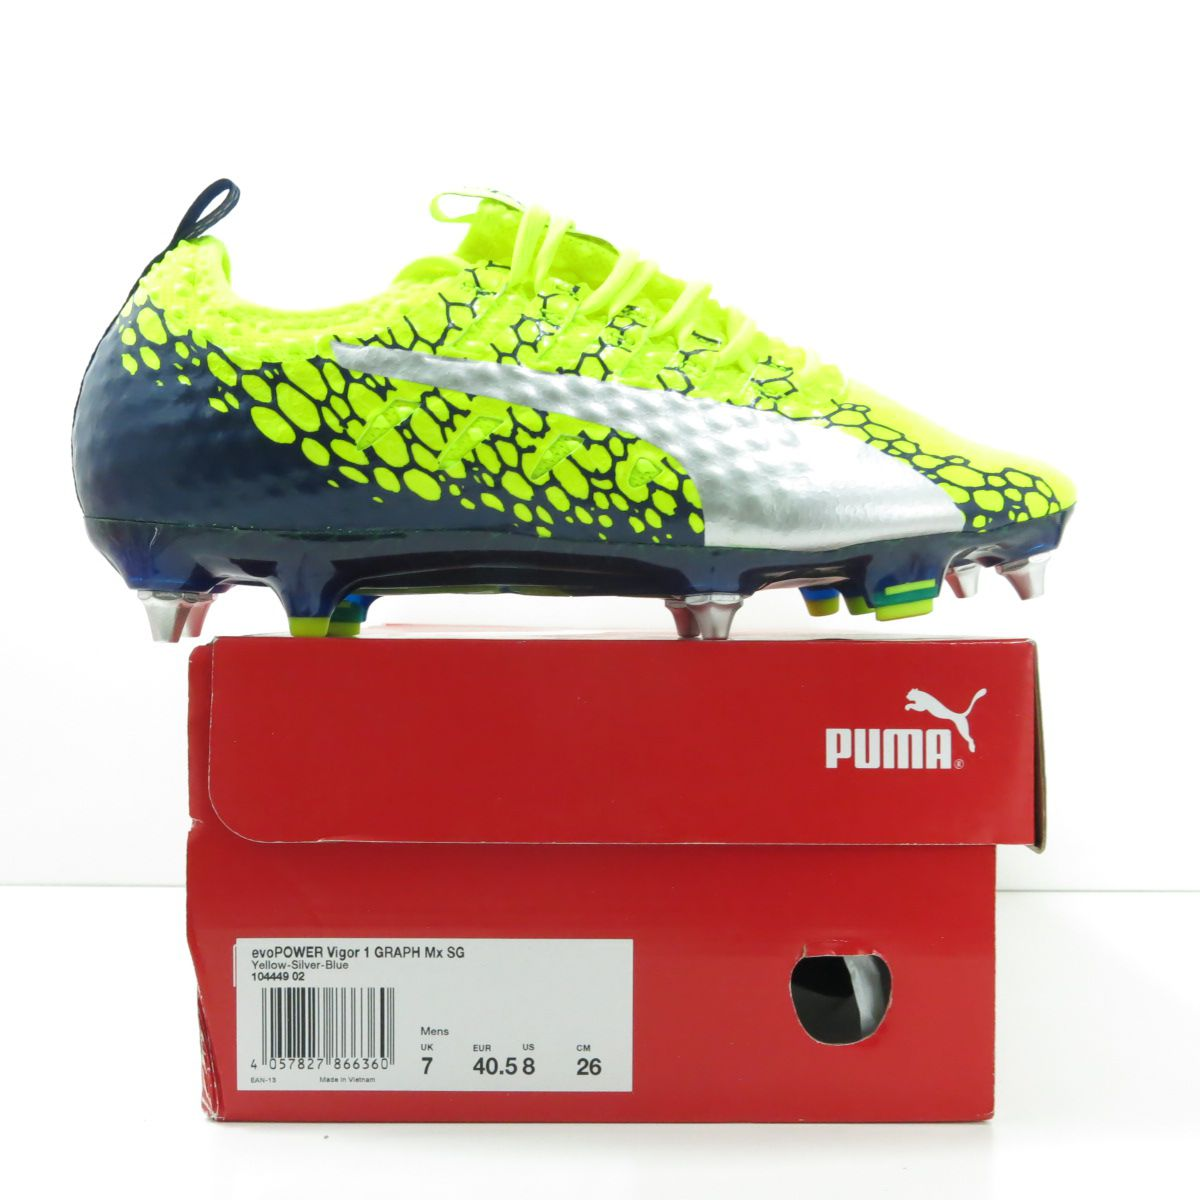 Chuteira Puma evopower Vigor 1 Graphic MX SG - Trava Mista